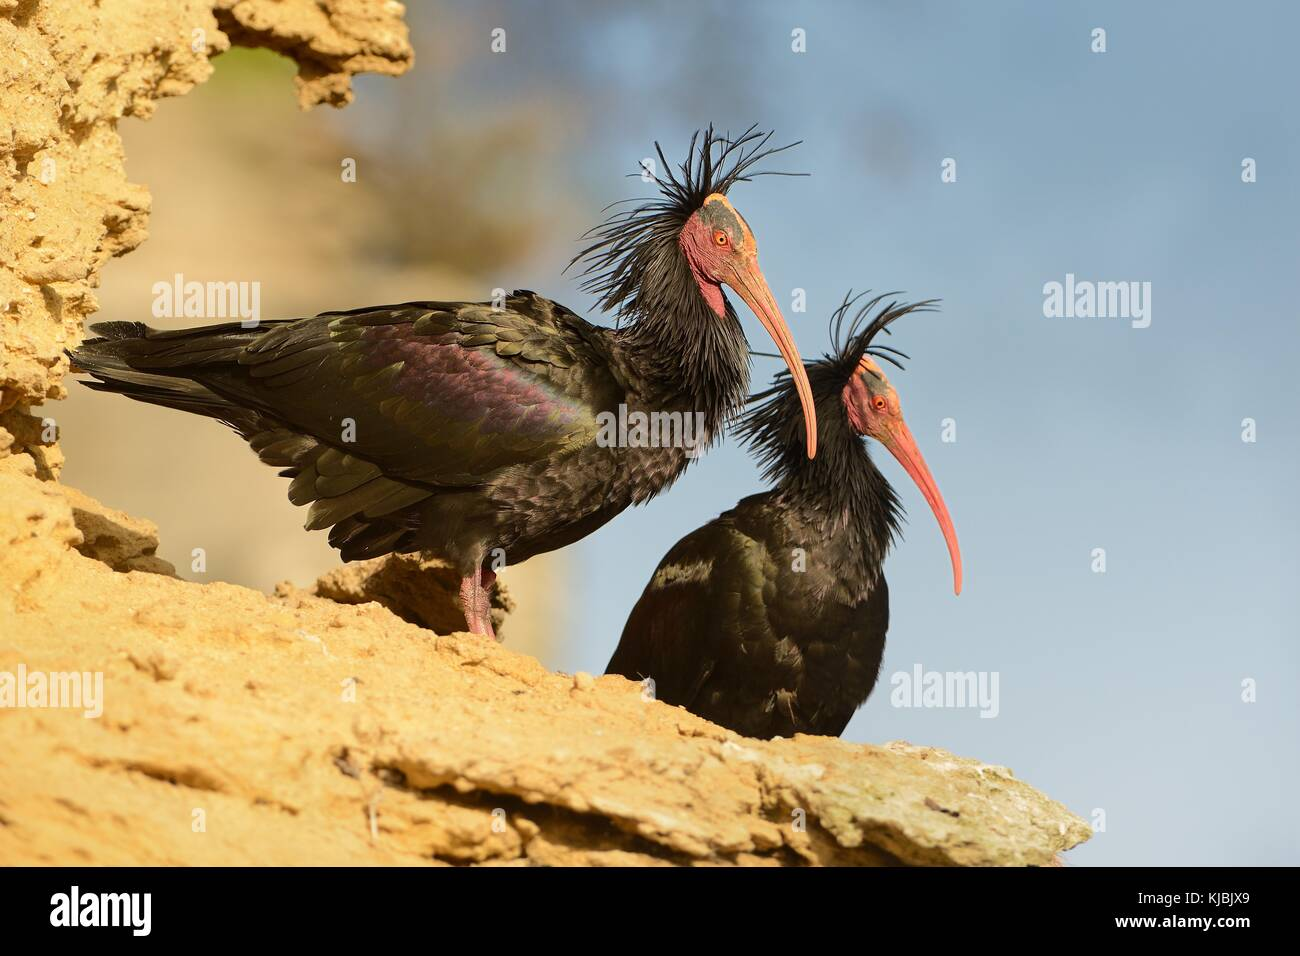 Two black Walldrapps (Geronticus eremita) with pink skinny beaks sitting on the rock in Spain with blue background. - Stock Image